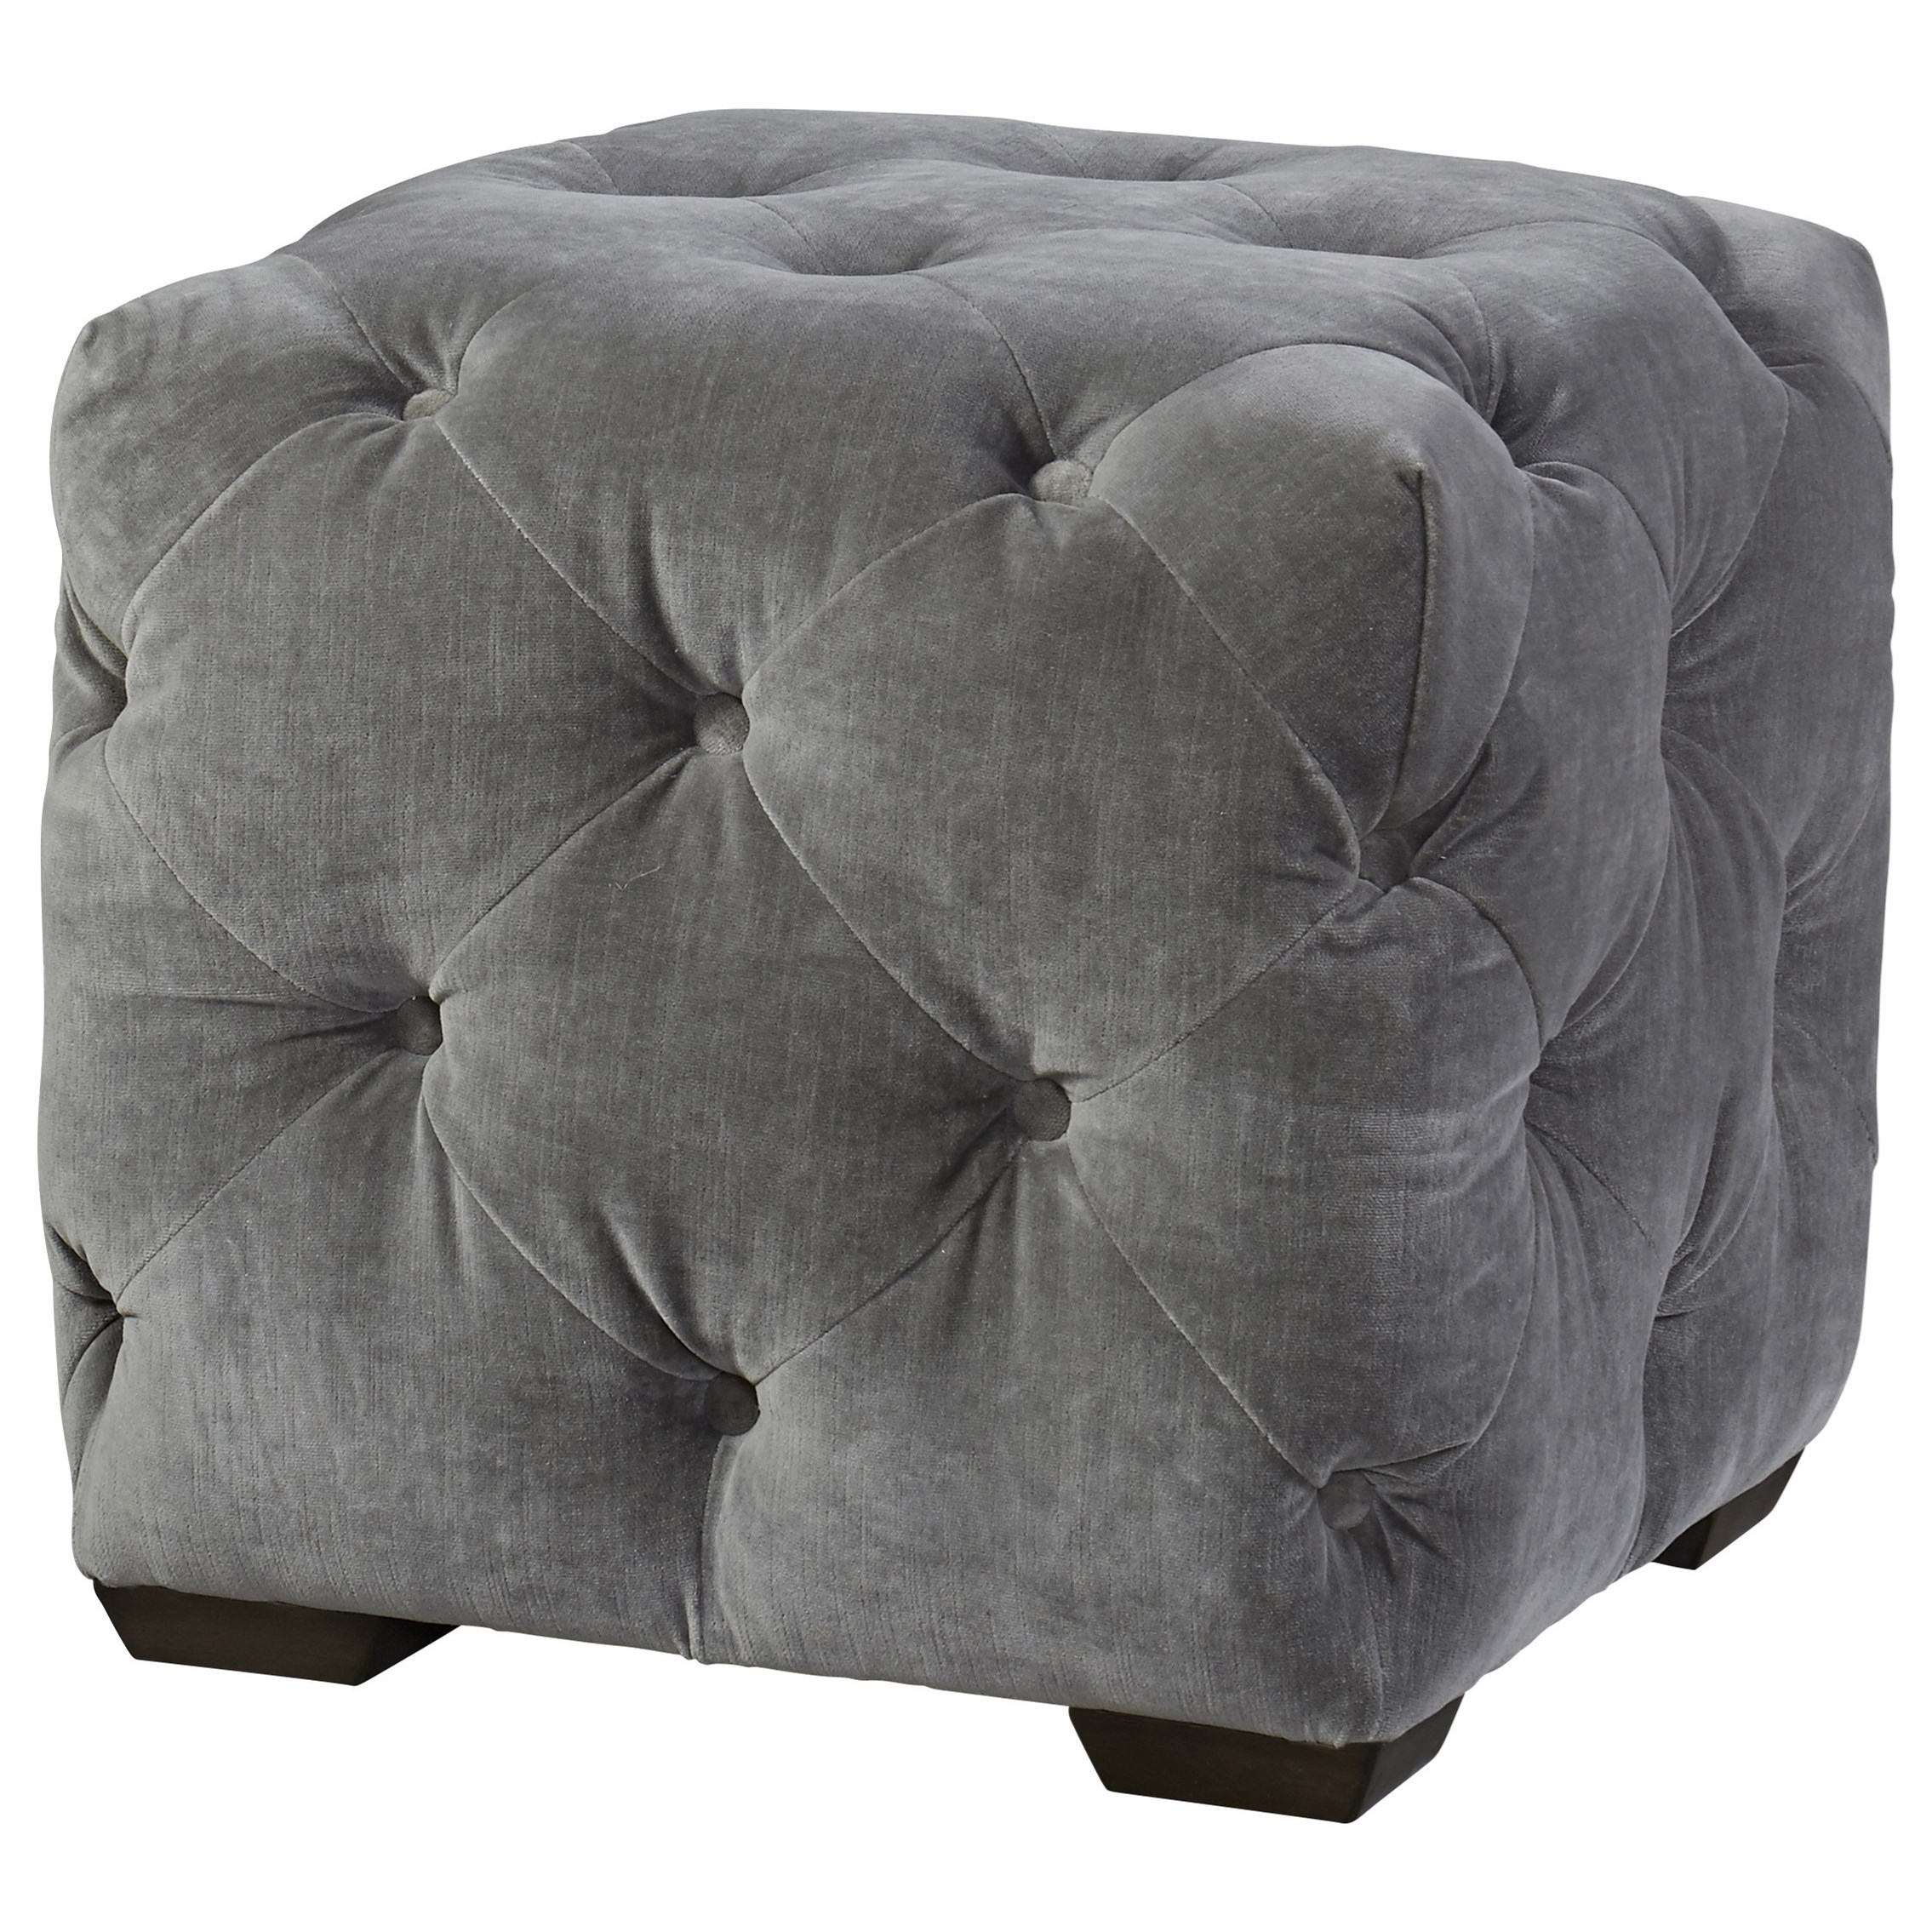 Accents Barkley Ottoman by Universal at Suburban Furniture